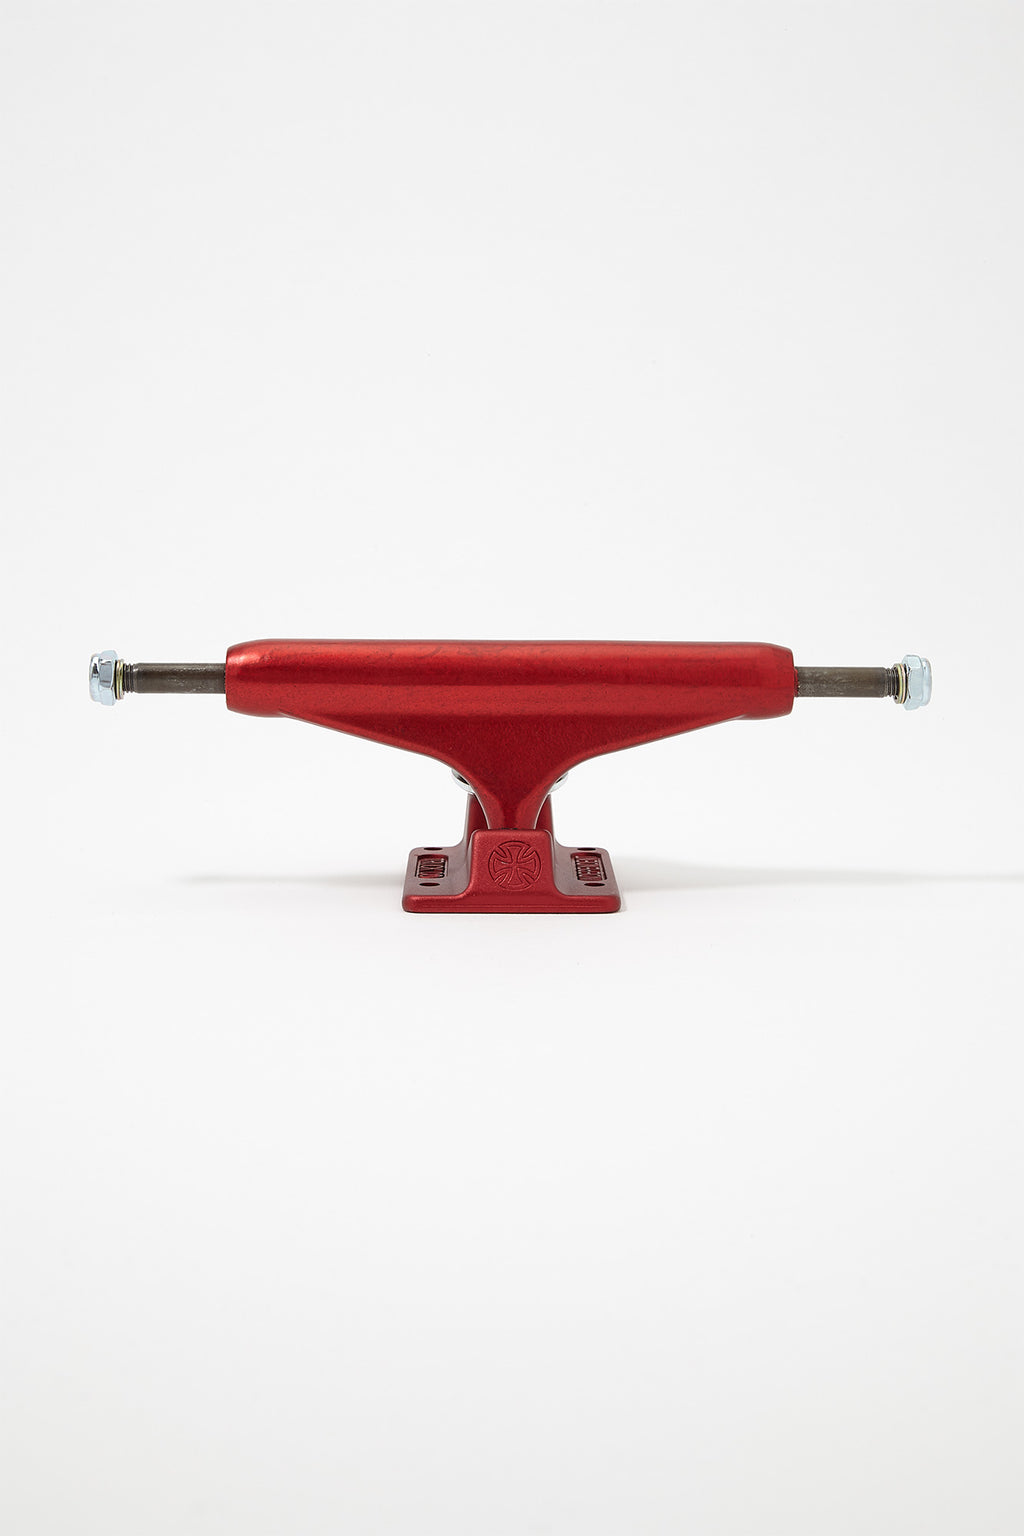 Independent Stage XI Forged Hollow Trucks 144mm Ano Red